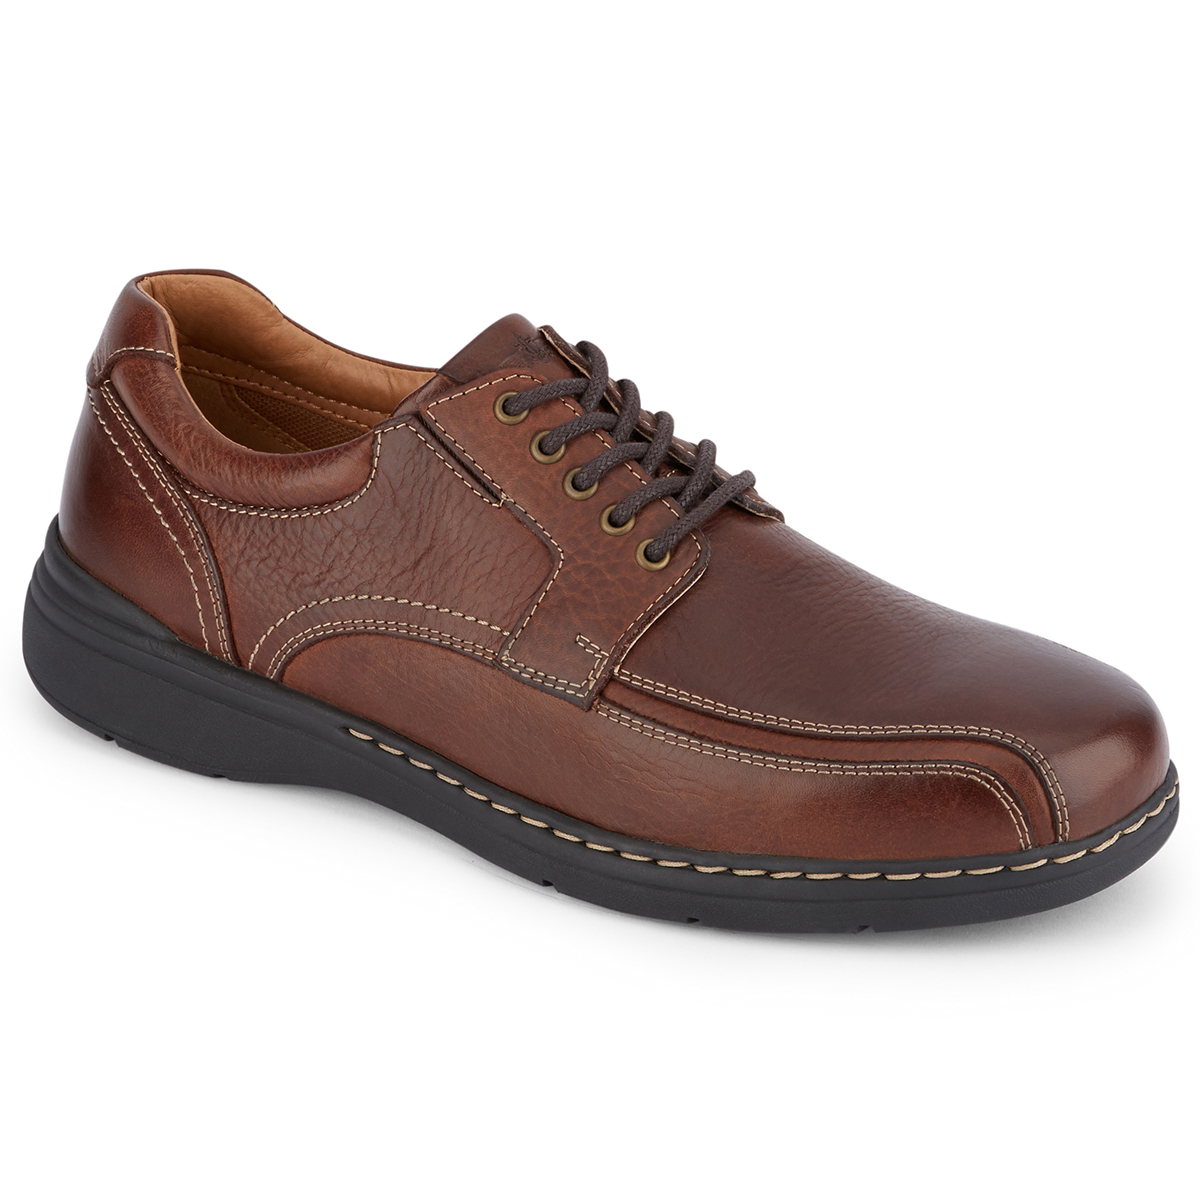 Dockers Men's Maclaren Oxford Shoe - Brown, 8